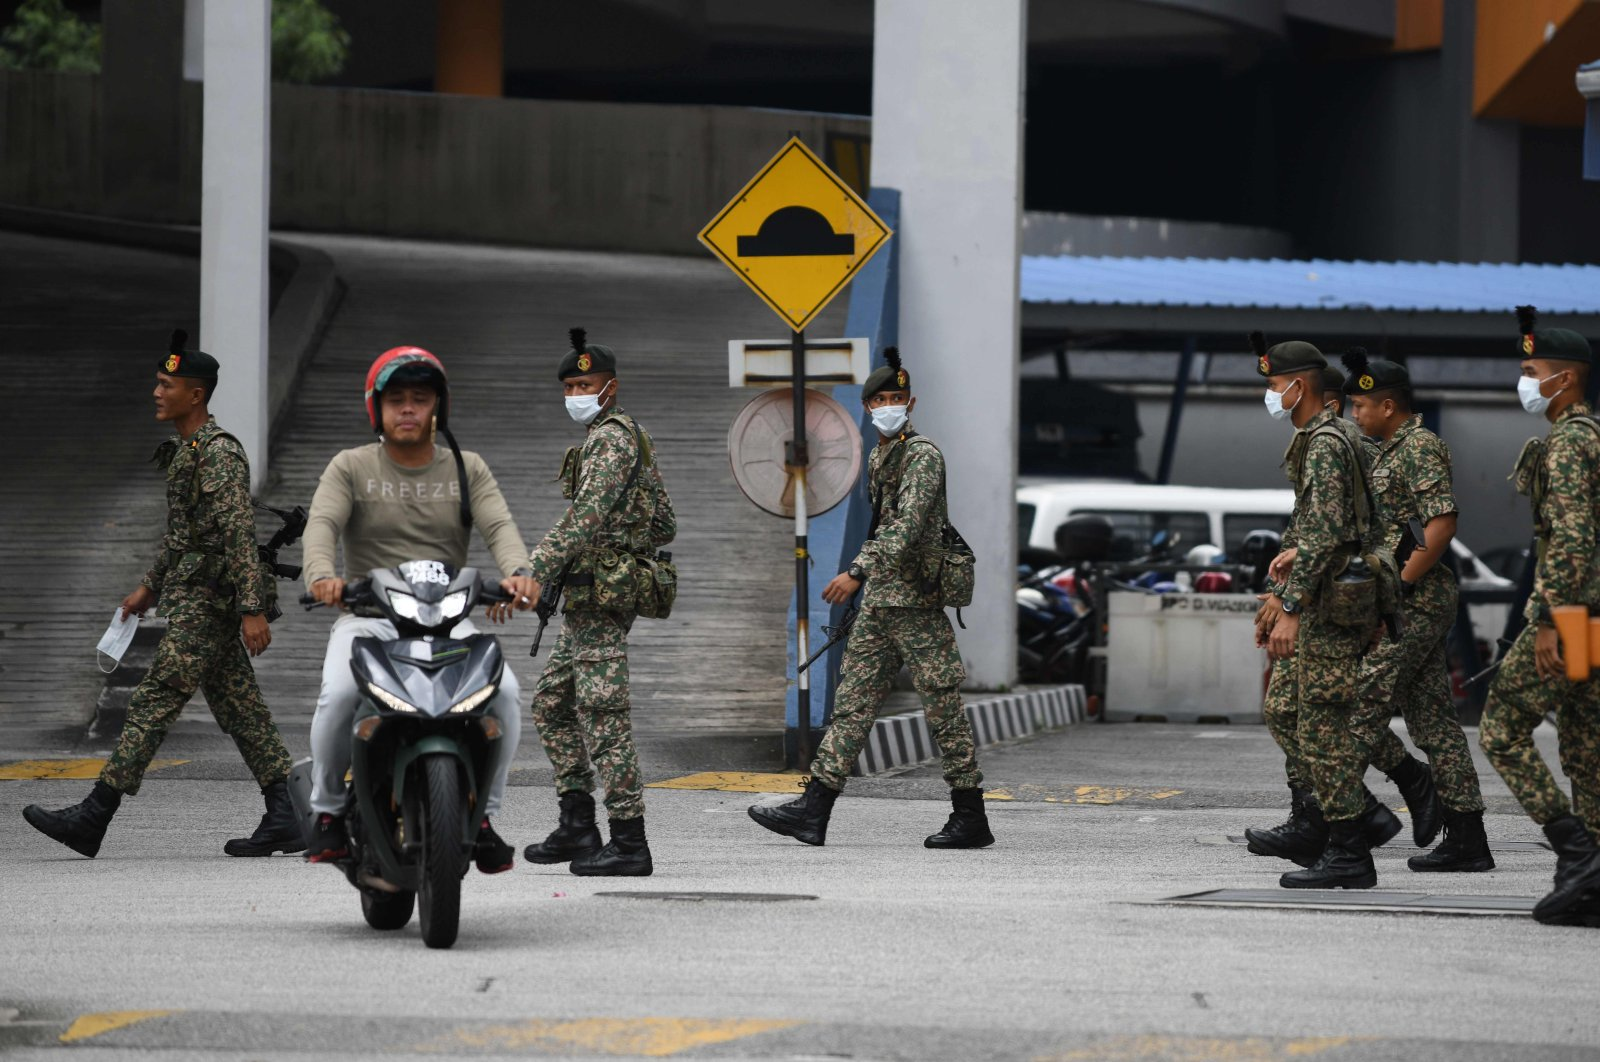 A motorcyclist rides past soldiers wearing face masks inside a police station during the control of movement in Kuala Lumpur amid fears over the spread of the coronavirus, Sunday, March 22, 2020. (AFP Photo)